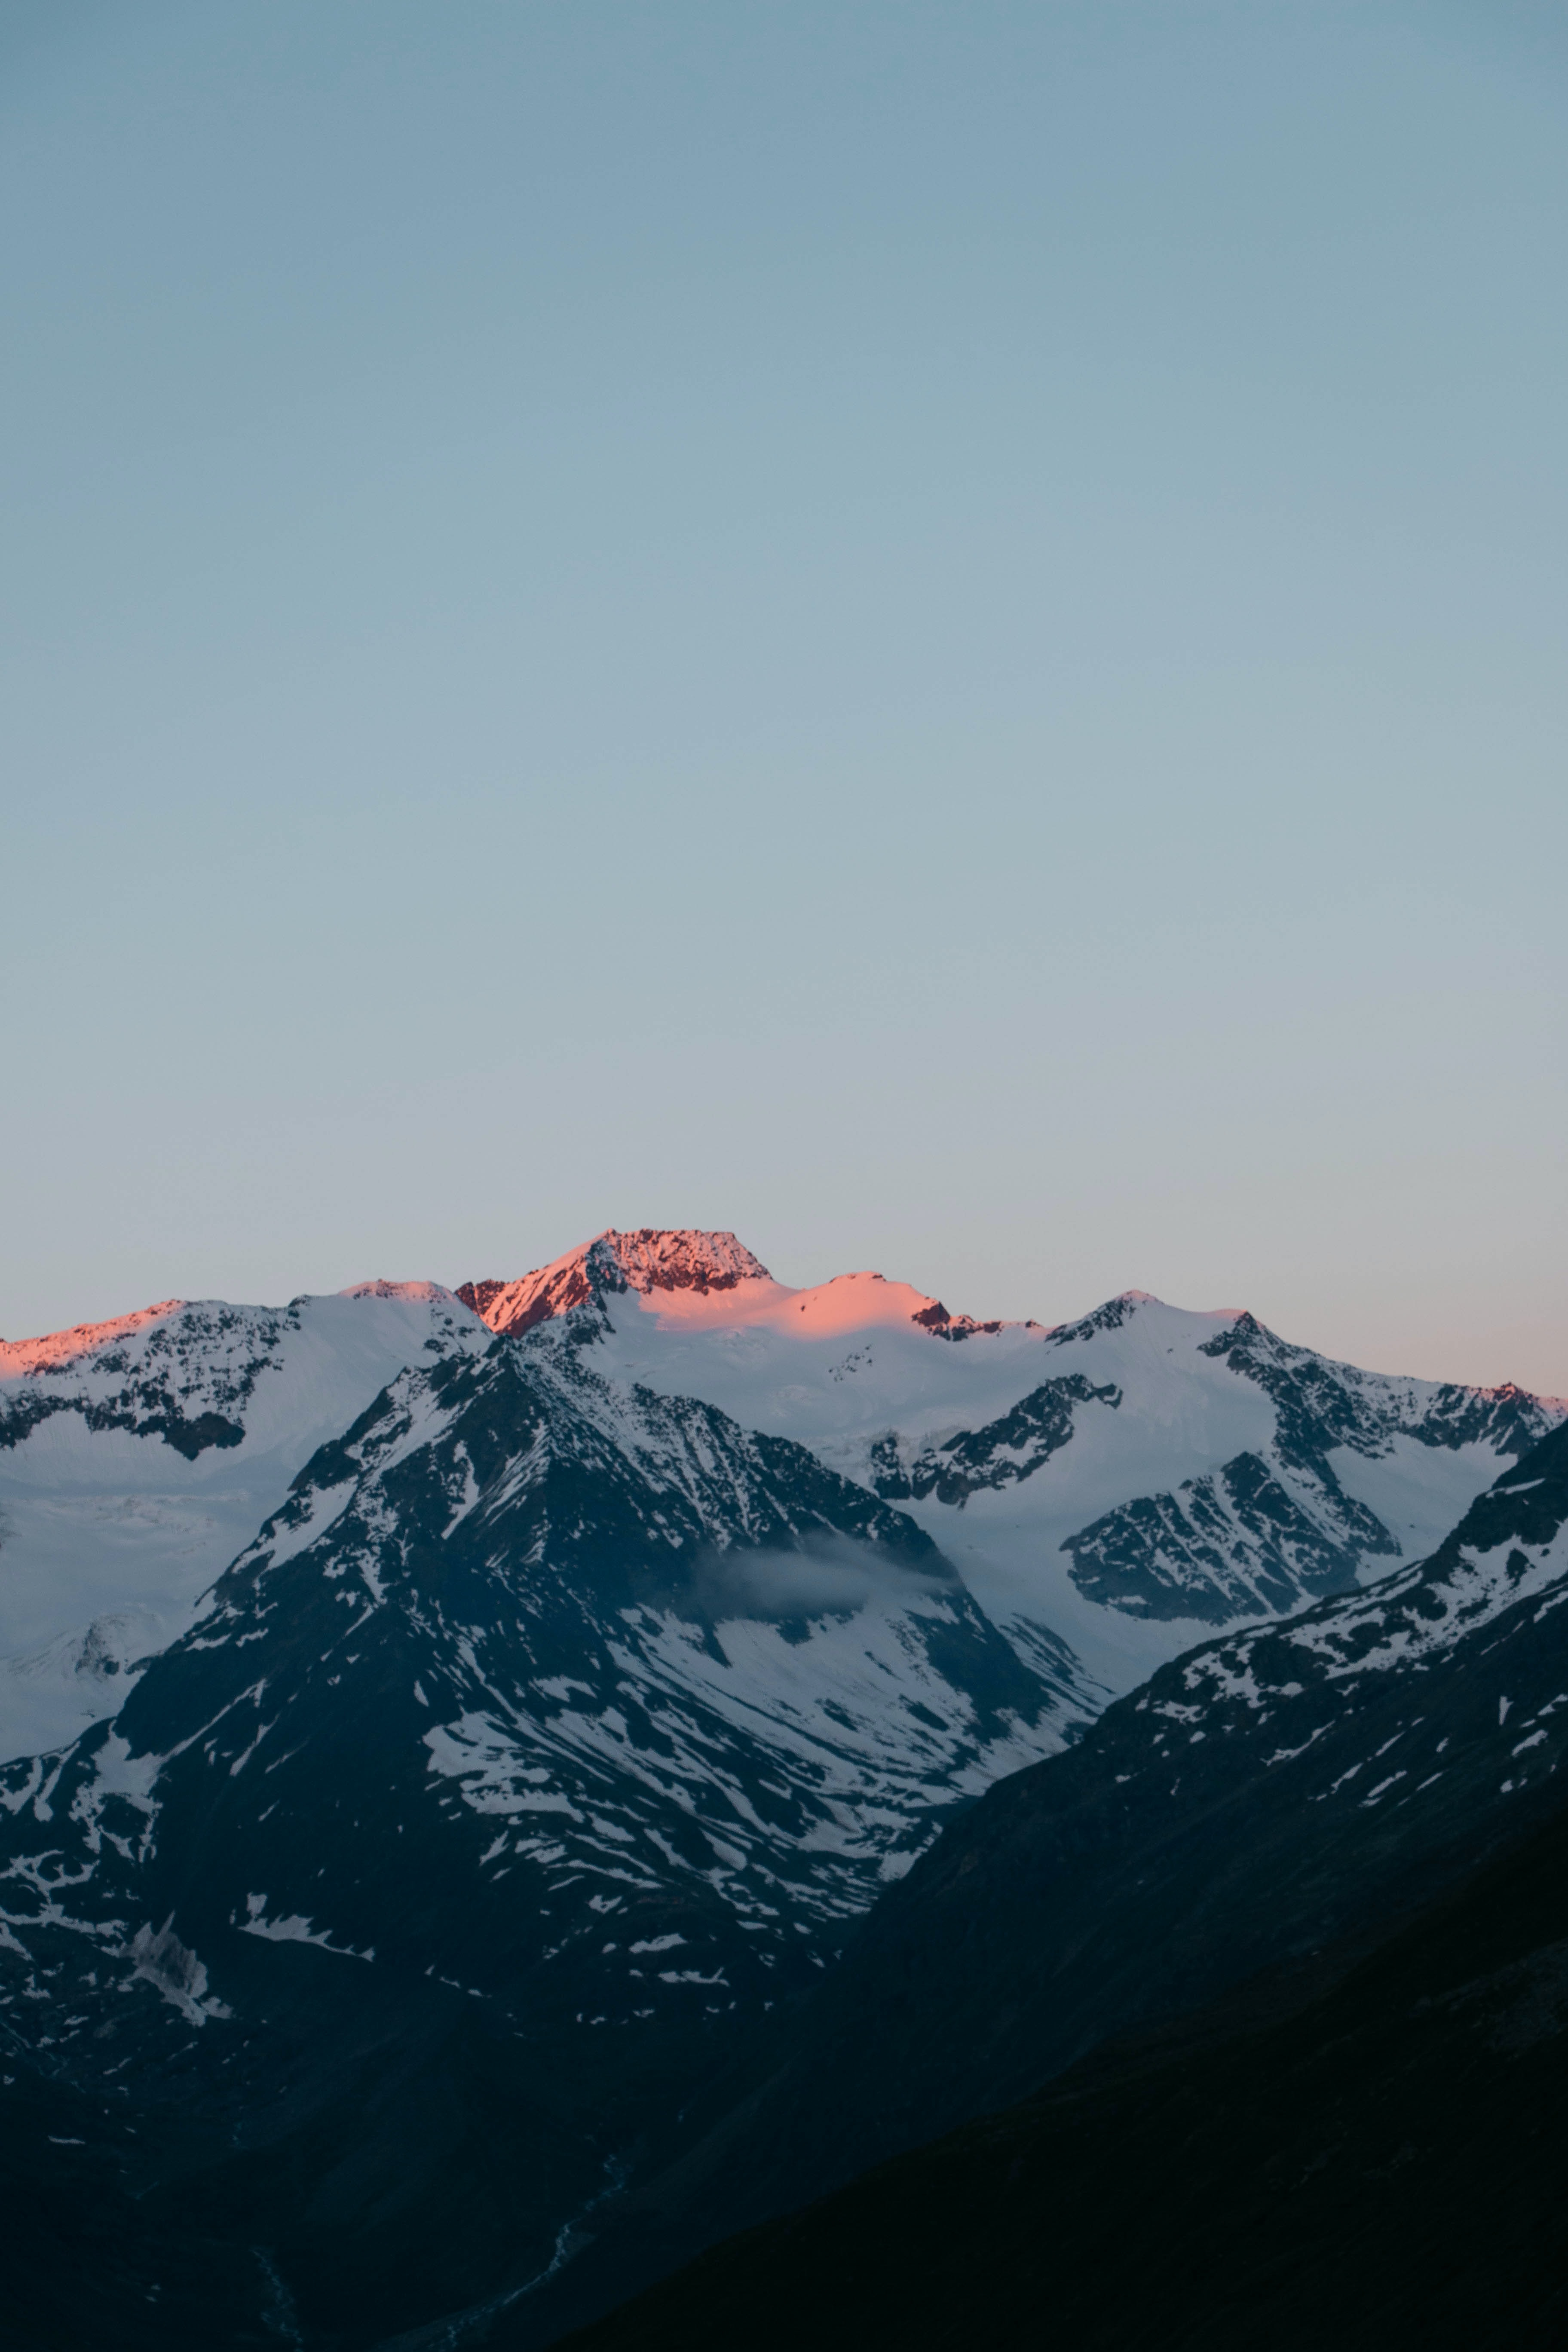 Red light falling on a snowy mountain ridge during sunset